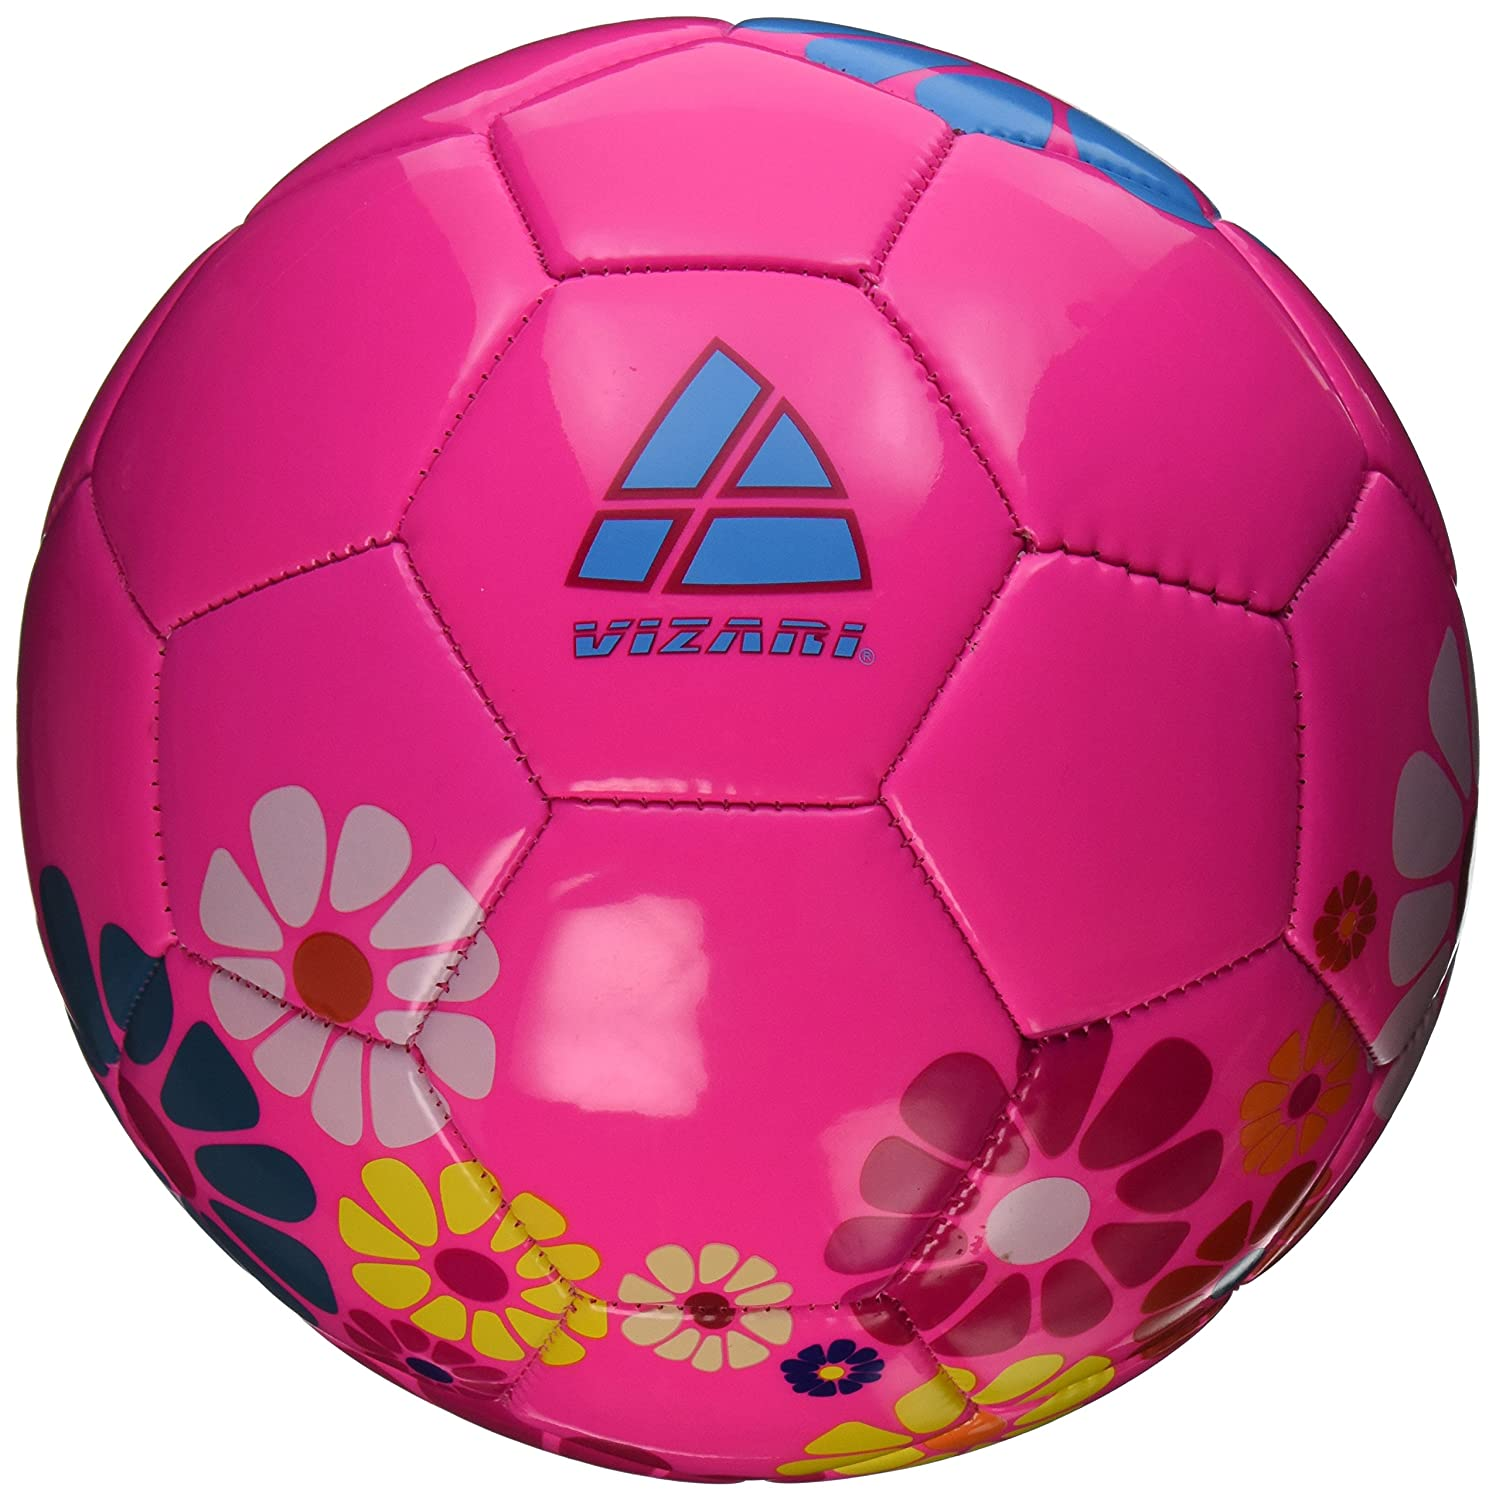 Soccer ball craft ideas - Vizari Blossom Soccer Ball